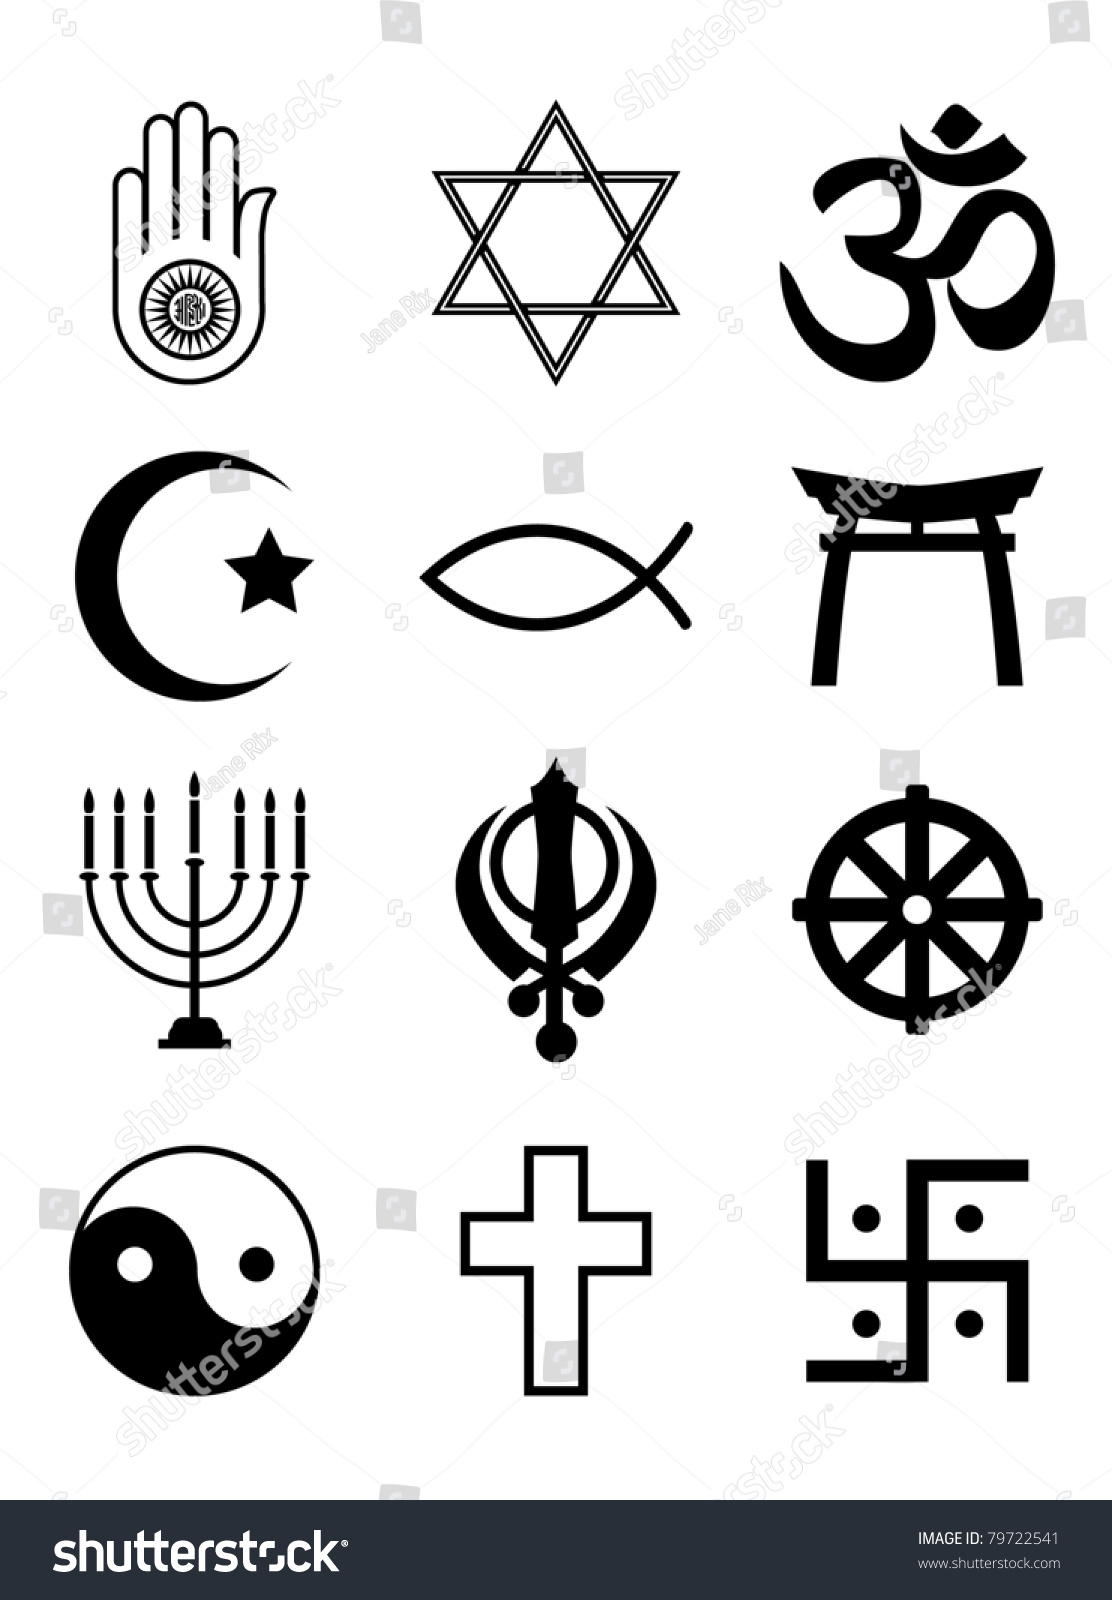 Set religious symbols black silhouettes isolated stock vector a set of religious symbols black silhouettes isolated on white eps10 vector format buycottarizona